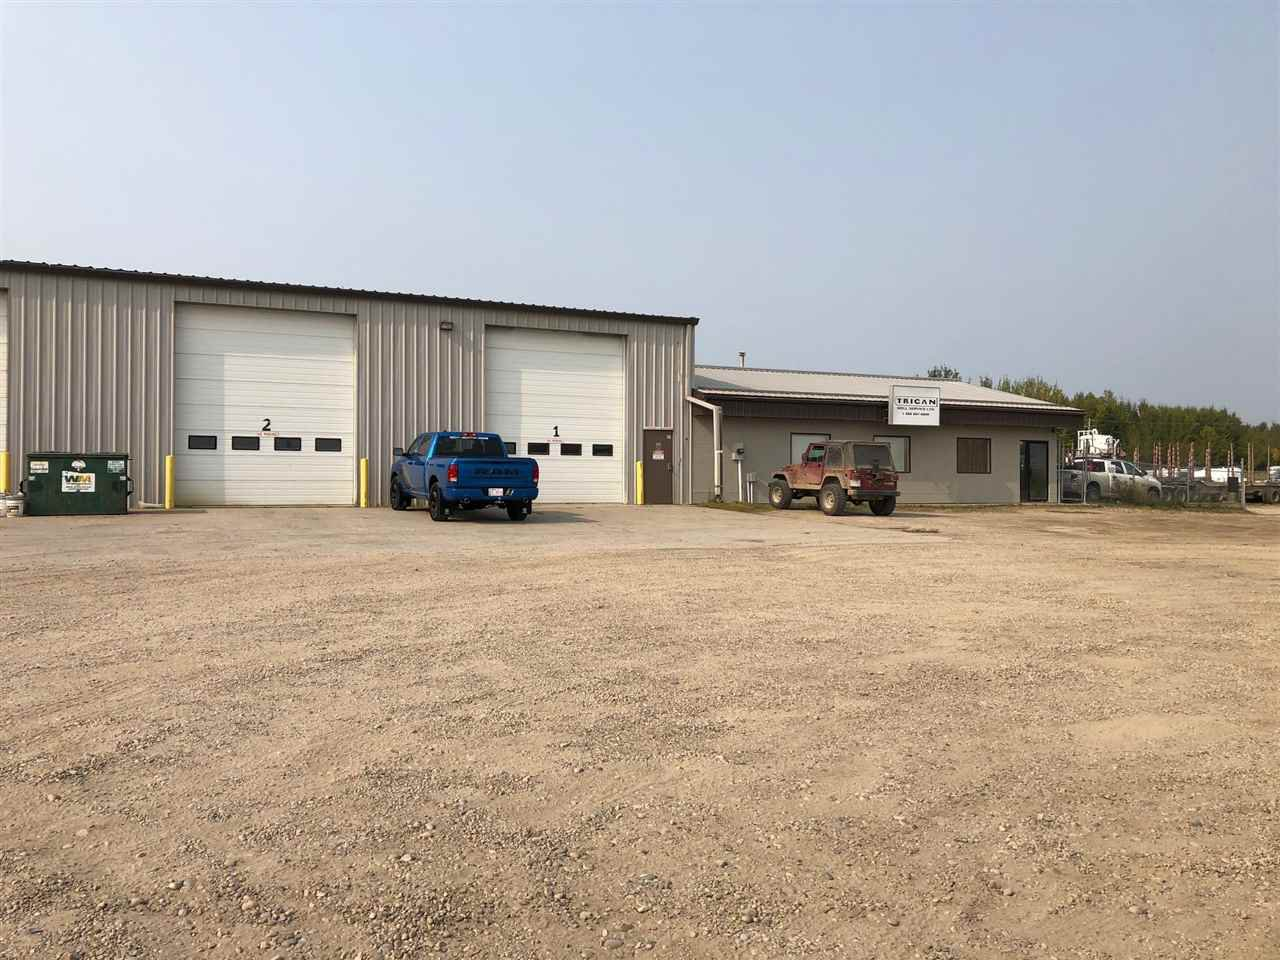 Main Photo: 4102 62 Street: Drayton Valley Industrial for lease : MLS®# E4216358